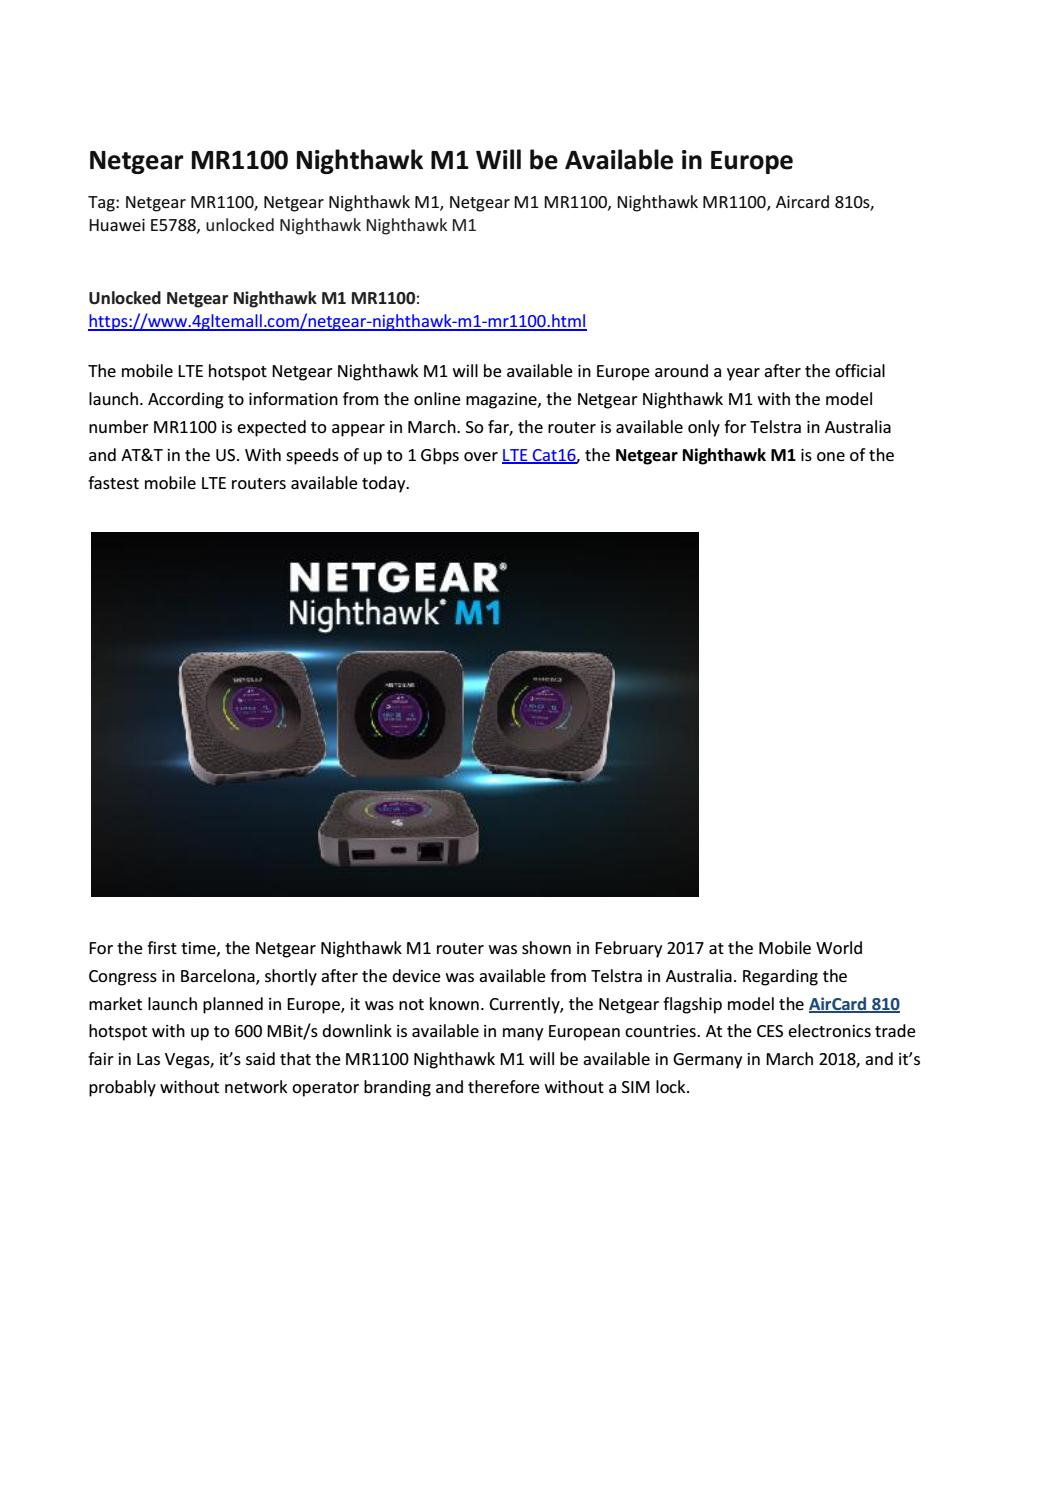 Netgear MR1100 Nighthawk M1 Will be Available in Europe by